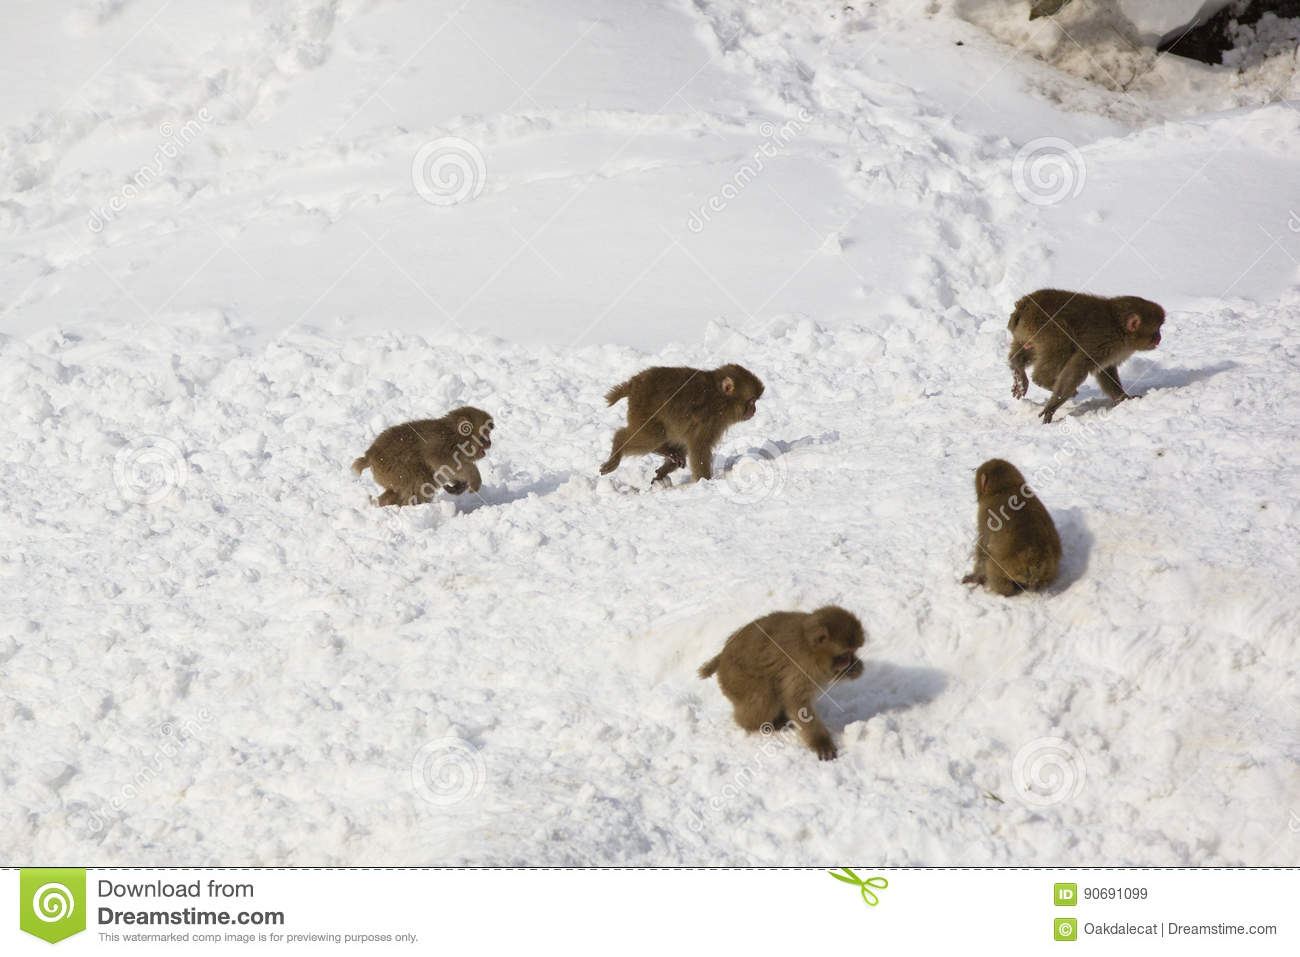 Wild Baby Snow Monkeys Playing Chase in Snow